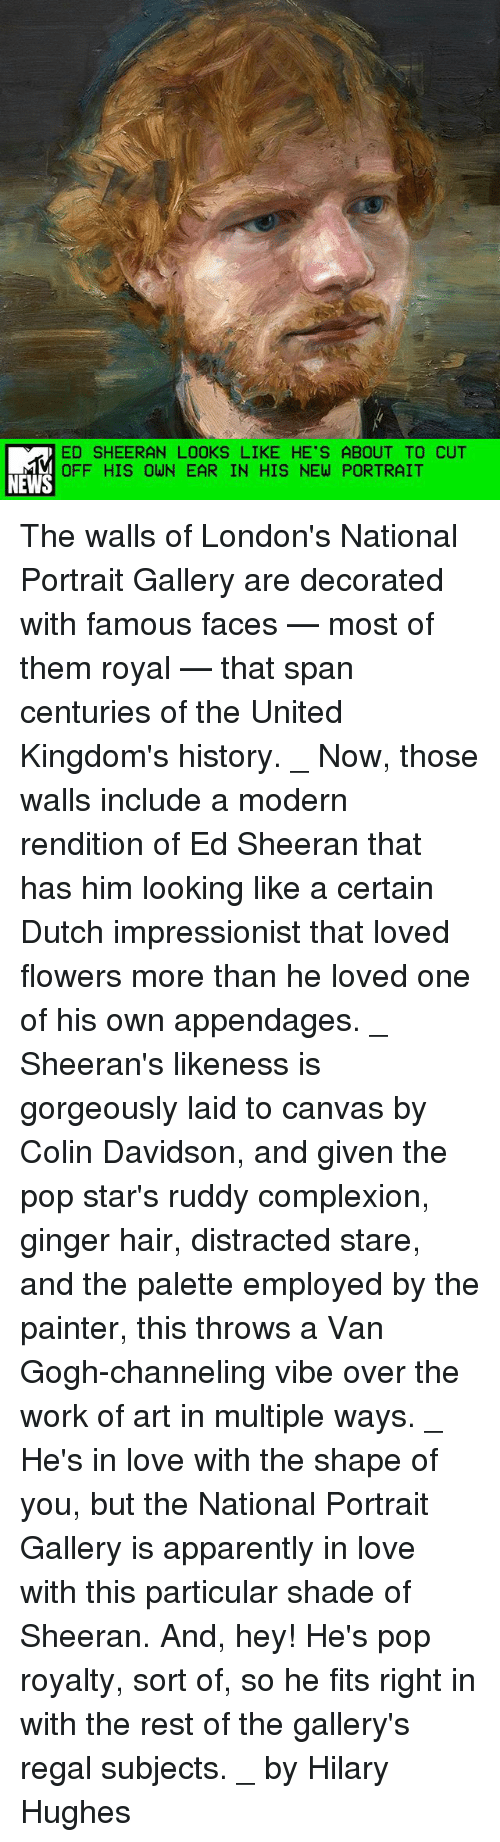 gingerly: ED SHEERAN LOOKS LIKE HE'S ABOUT TO CUT  OFF HIS OWN EAR IN HIS NEW PORTRAIT  NEWS The walls of London's National Portrait Gallery are decorated with famous faces — most of them royal — that span centuries of the United Kingdom's history. _ Now, those walls include a modern rendition of Ed Sheeran that has him looking like a certain Dutch impressionist that loved flowers more than he loved one of his own appendages. _ Sheeran's likeness is gorgeously laid to canvas by Colin Davidson, and given the pop star's ruddy complexion, ginger hair, distracted stare, and the palette employed by the painter, this throws a Van Gogh-channeling vibe over the work of art in multiple ways. _ He's in love with the shape of you, but the National Portrait Gallery is apparently in love with this particular shade of Sheeran. And, hey! He's pop royalty, sort of, so he fits right in with the rest of the gallery's regal subjects. _ by Hilary Hughes